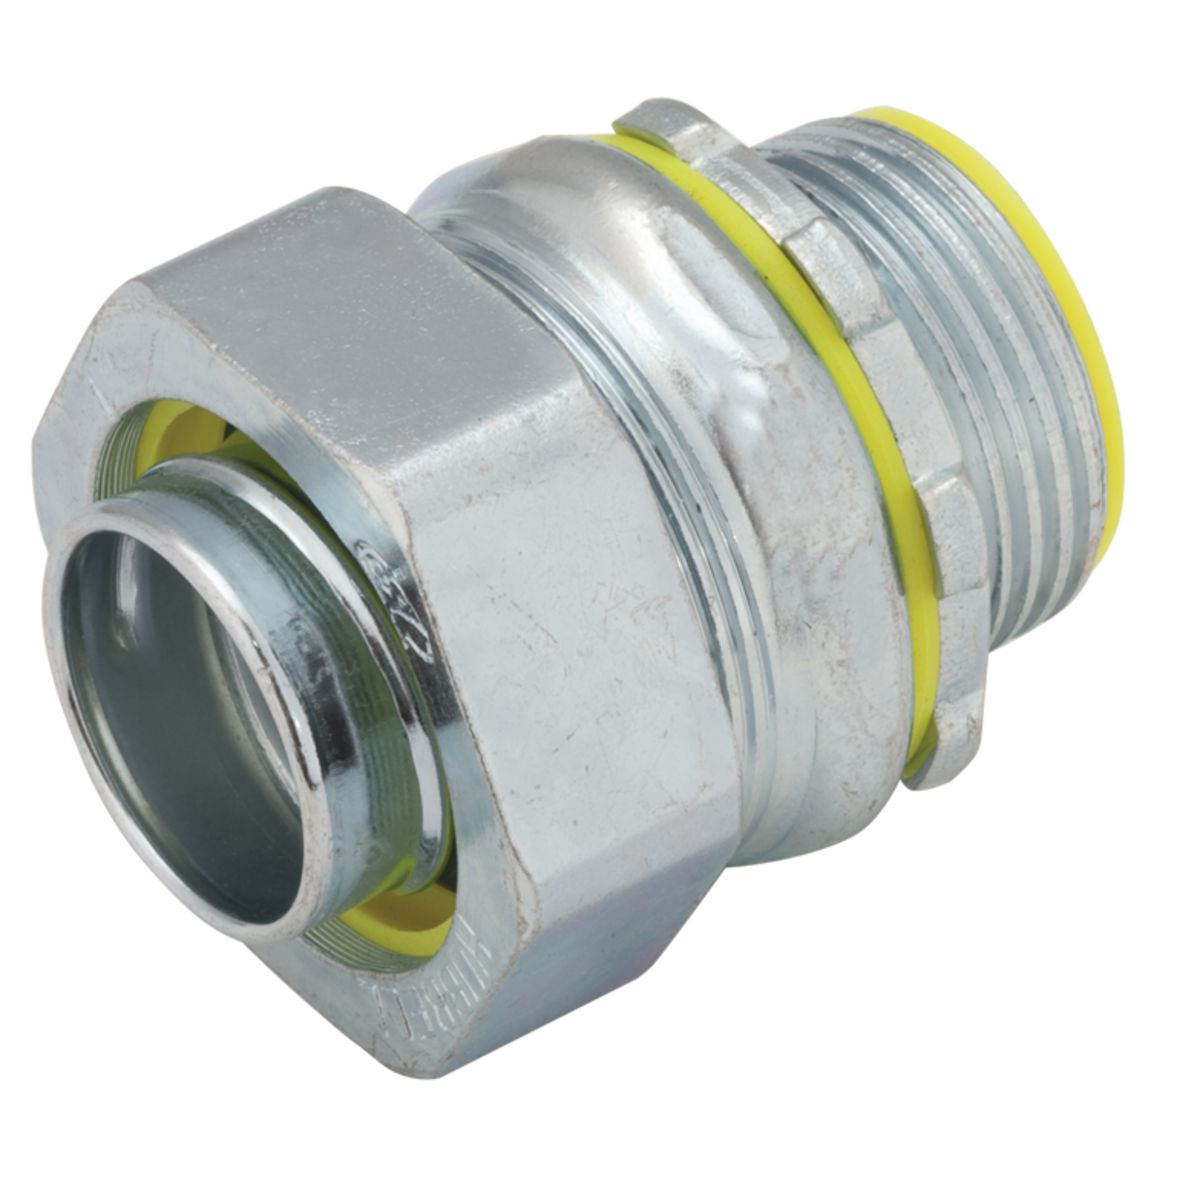 Hubbell K0751 Conduit Connector